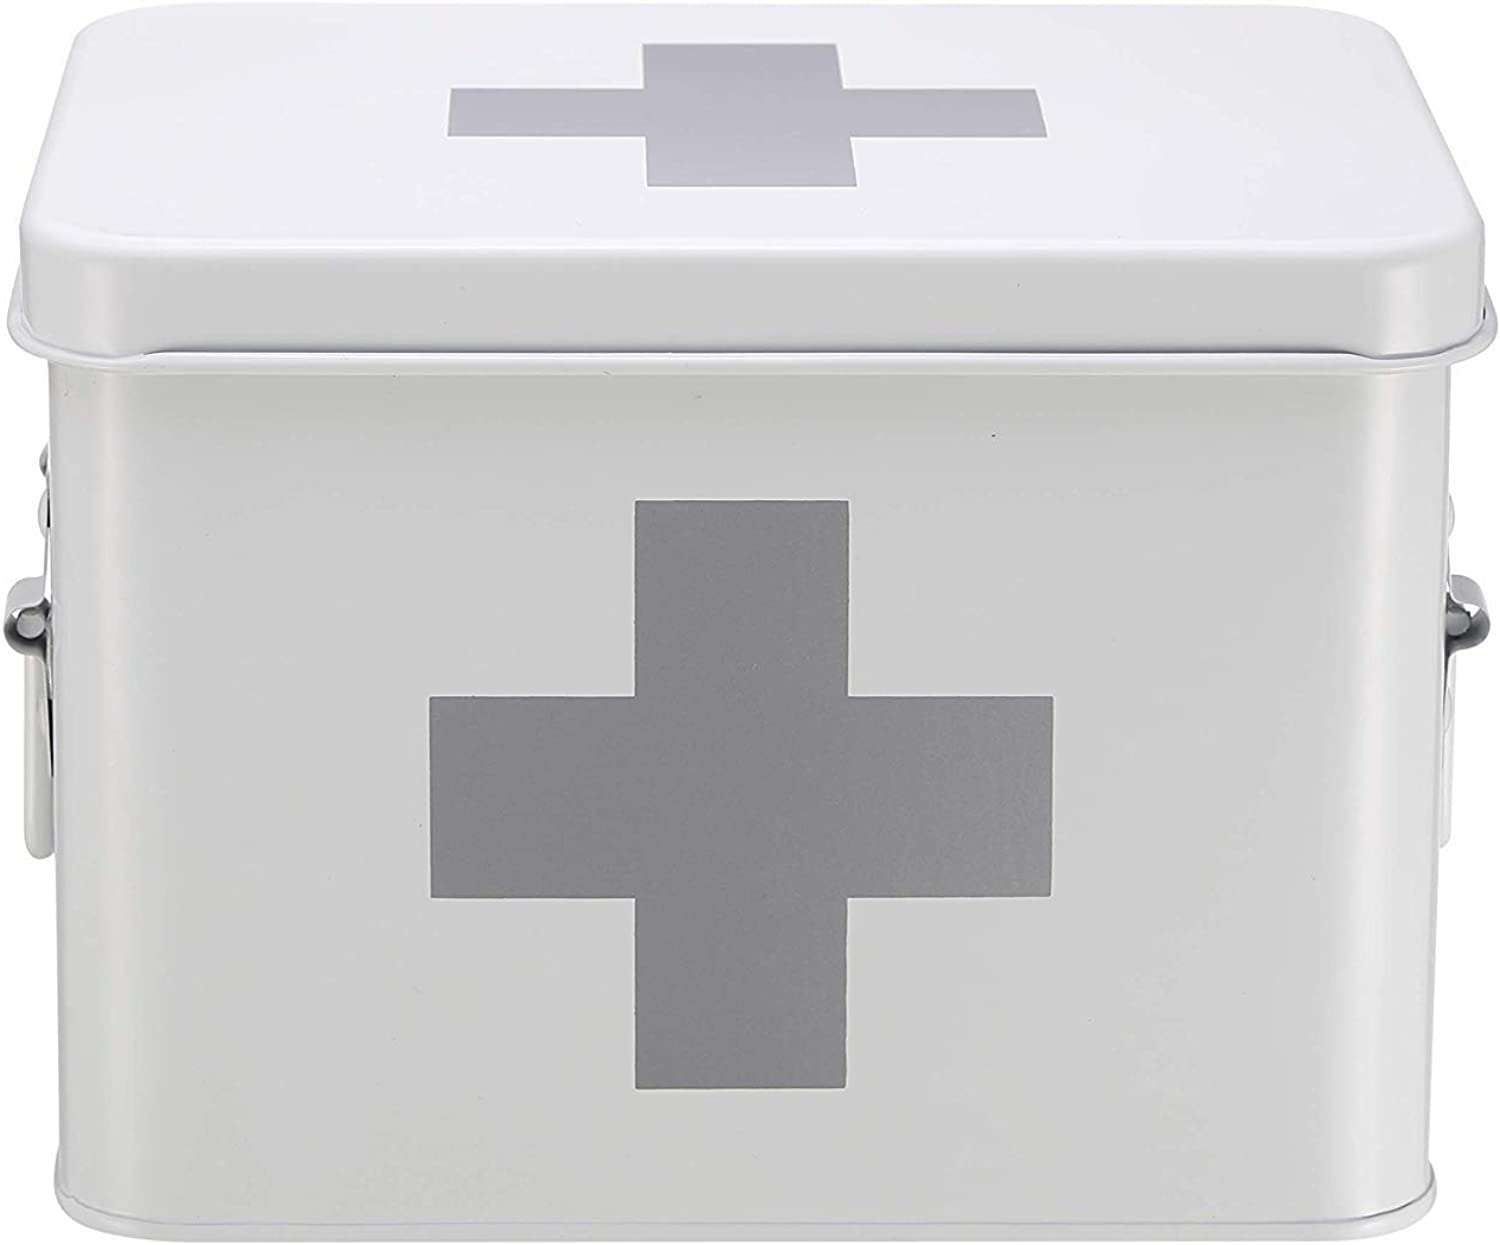 LLSDLS White Medicine Box, Medicine Tin with Double Layer and 5 Compartments, Metal Medicine Storage Box, 21.5 X 15 X 16 cm